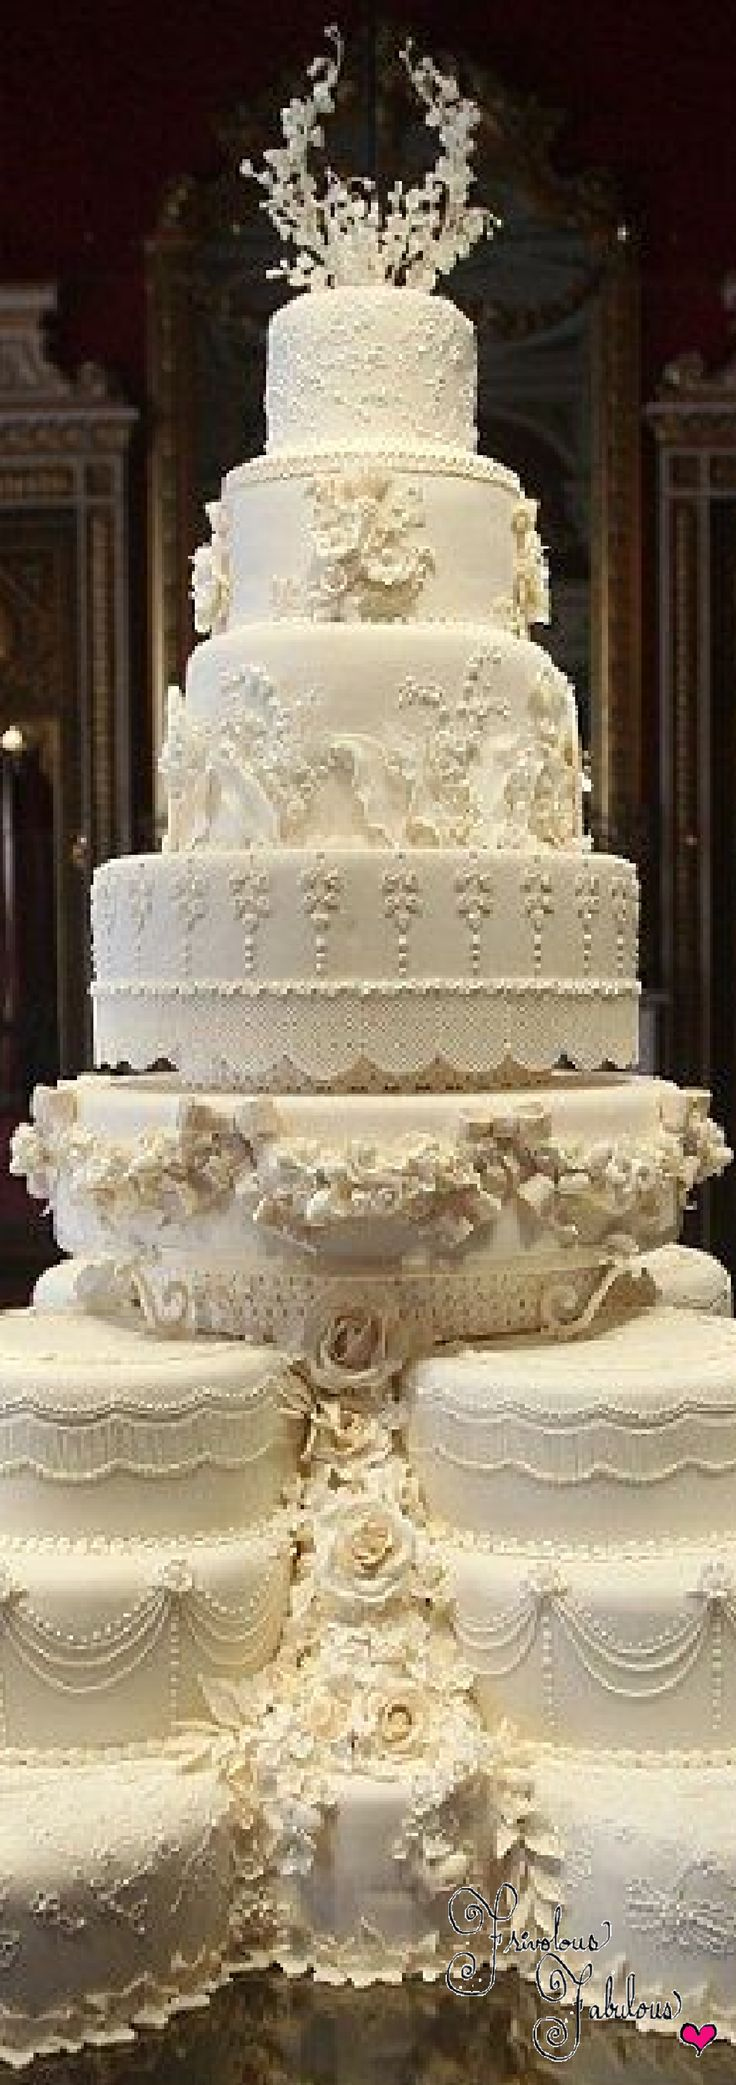 pictures royal wedding cakes 1049 best cakes images on 18492